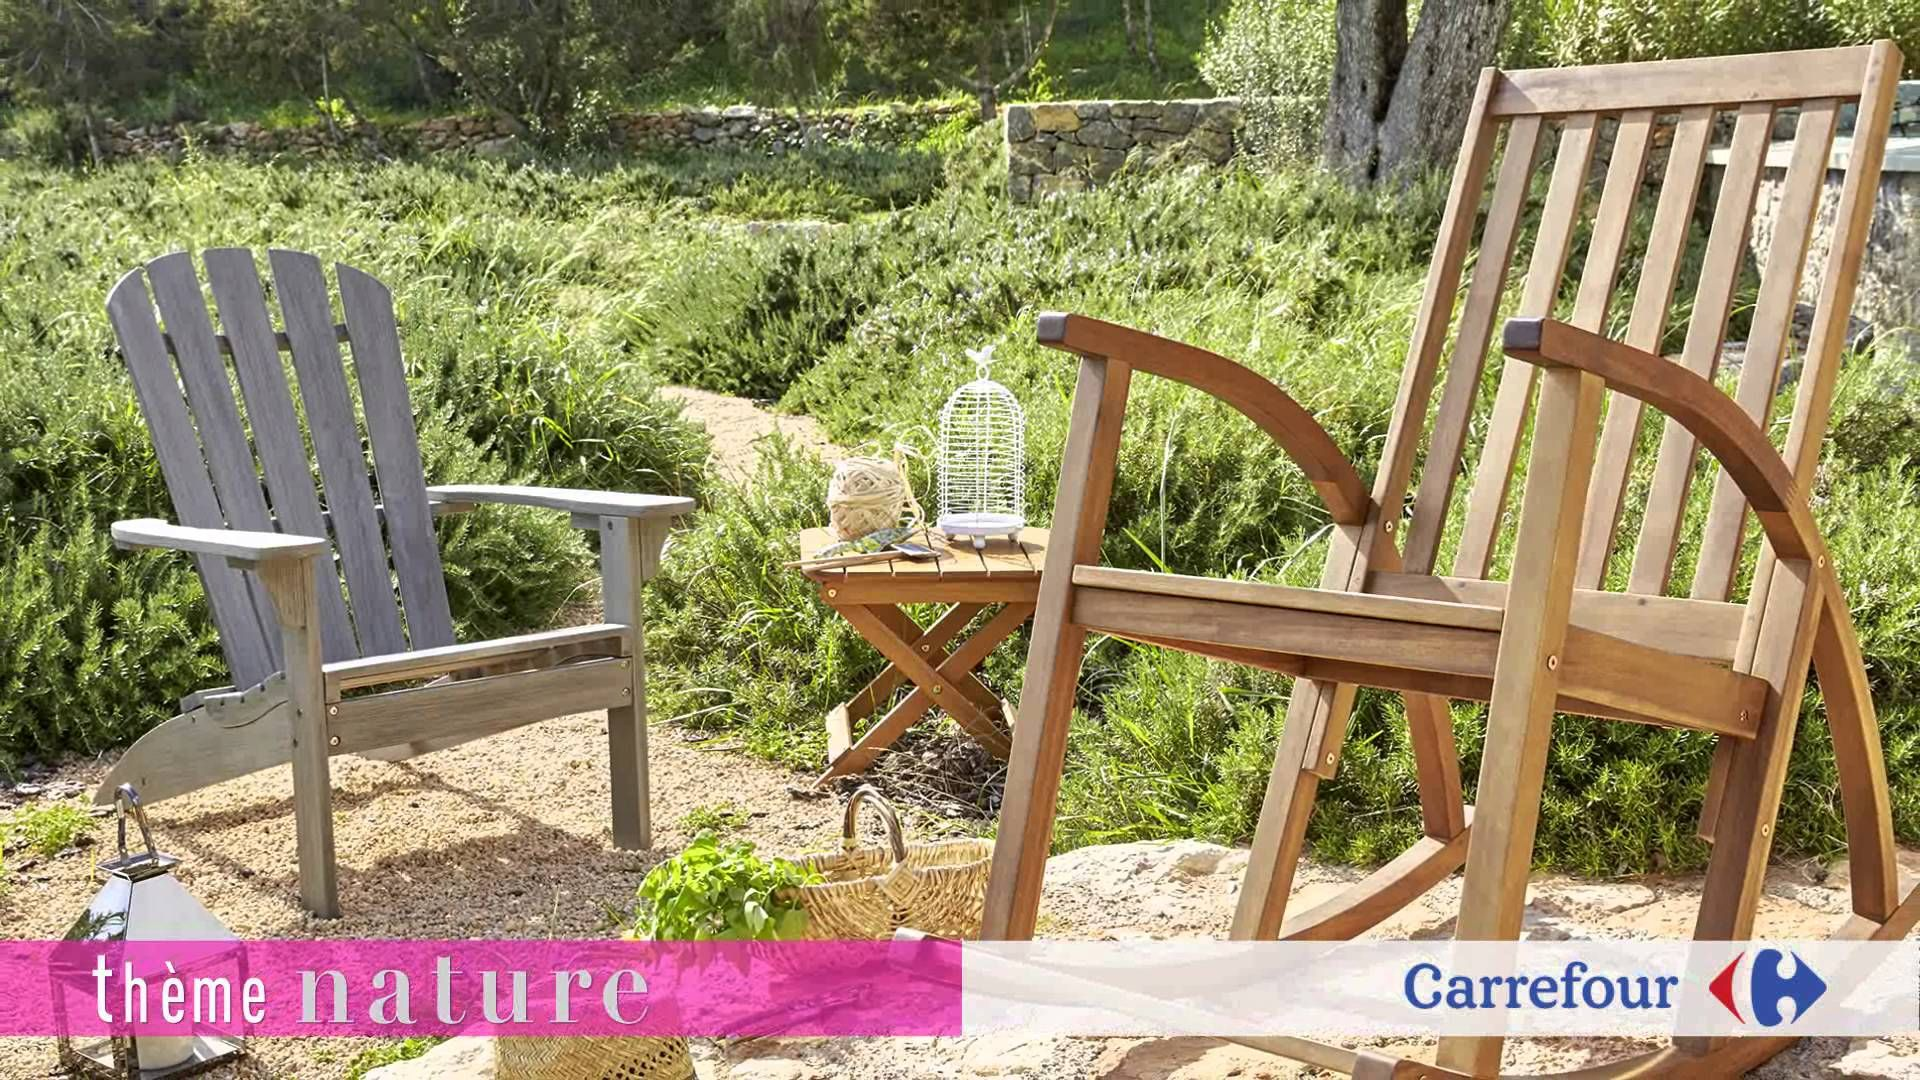 Collection de mobilier de jardin Hyba - Carrefour | Ambiances Jardin ...